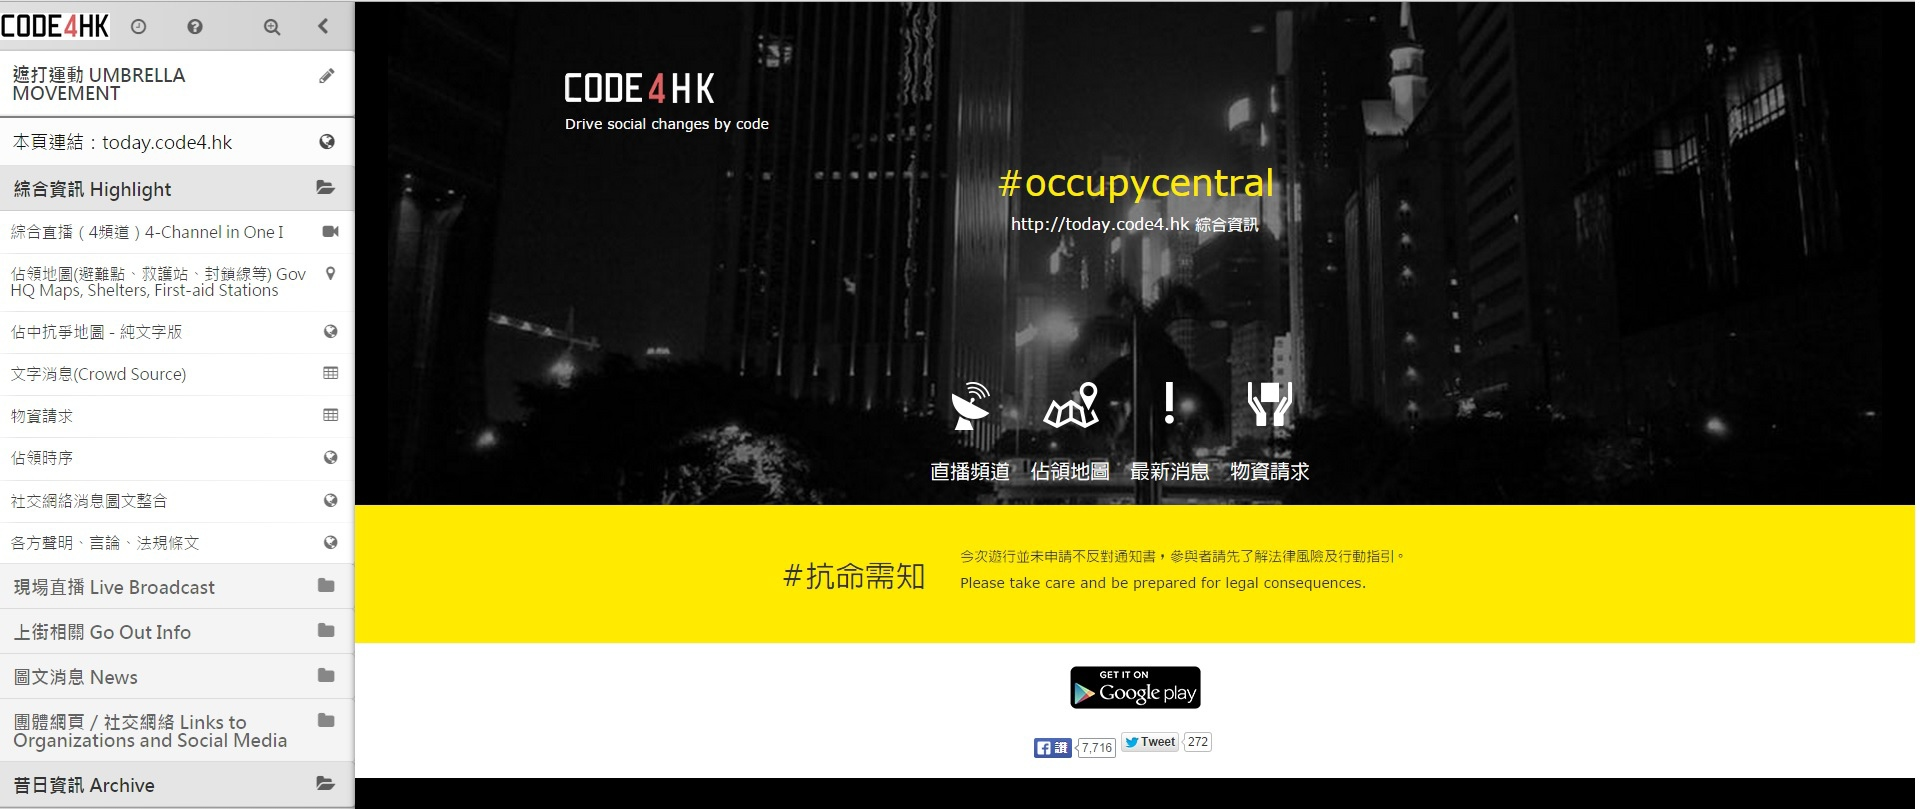 佔領中環(Occupy Central)資訊彙整-遮打運動 UMBRELLA MOVEMENT-hackfoldr